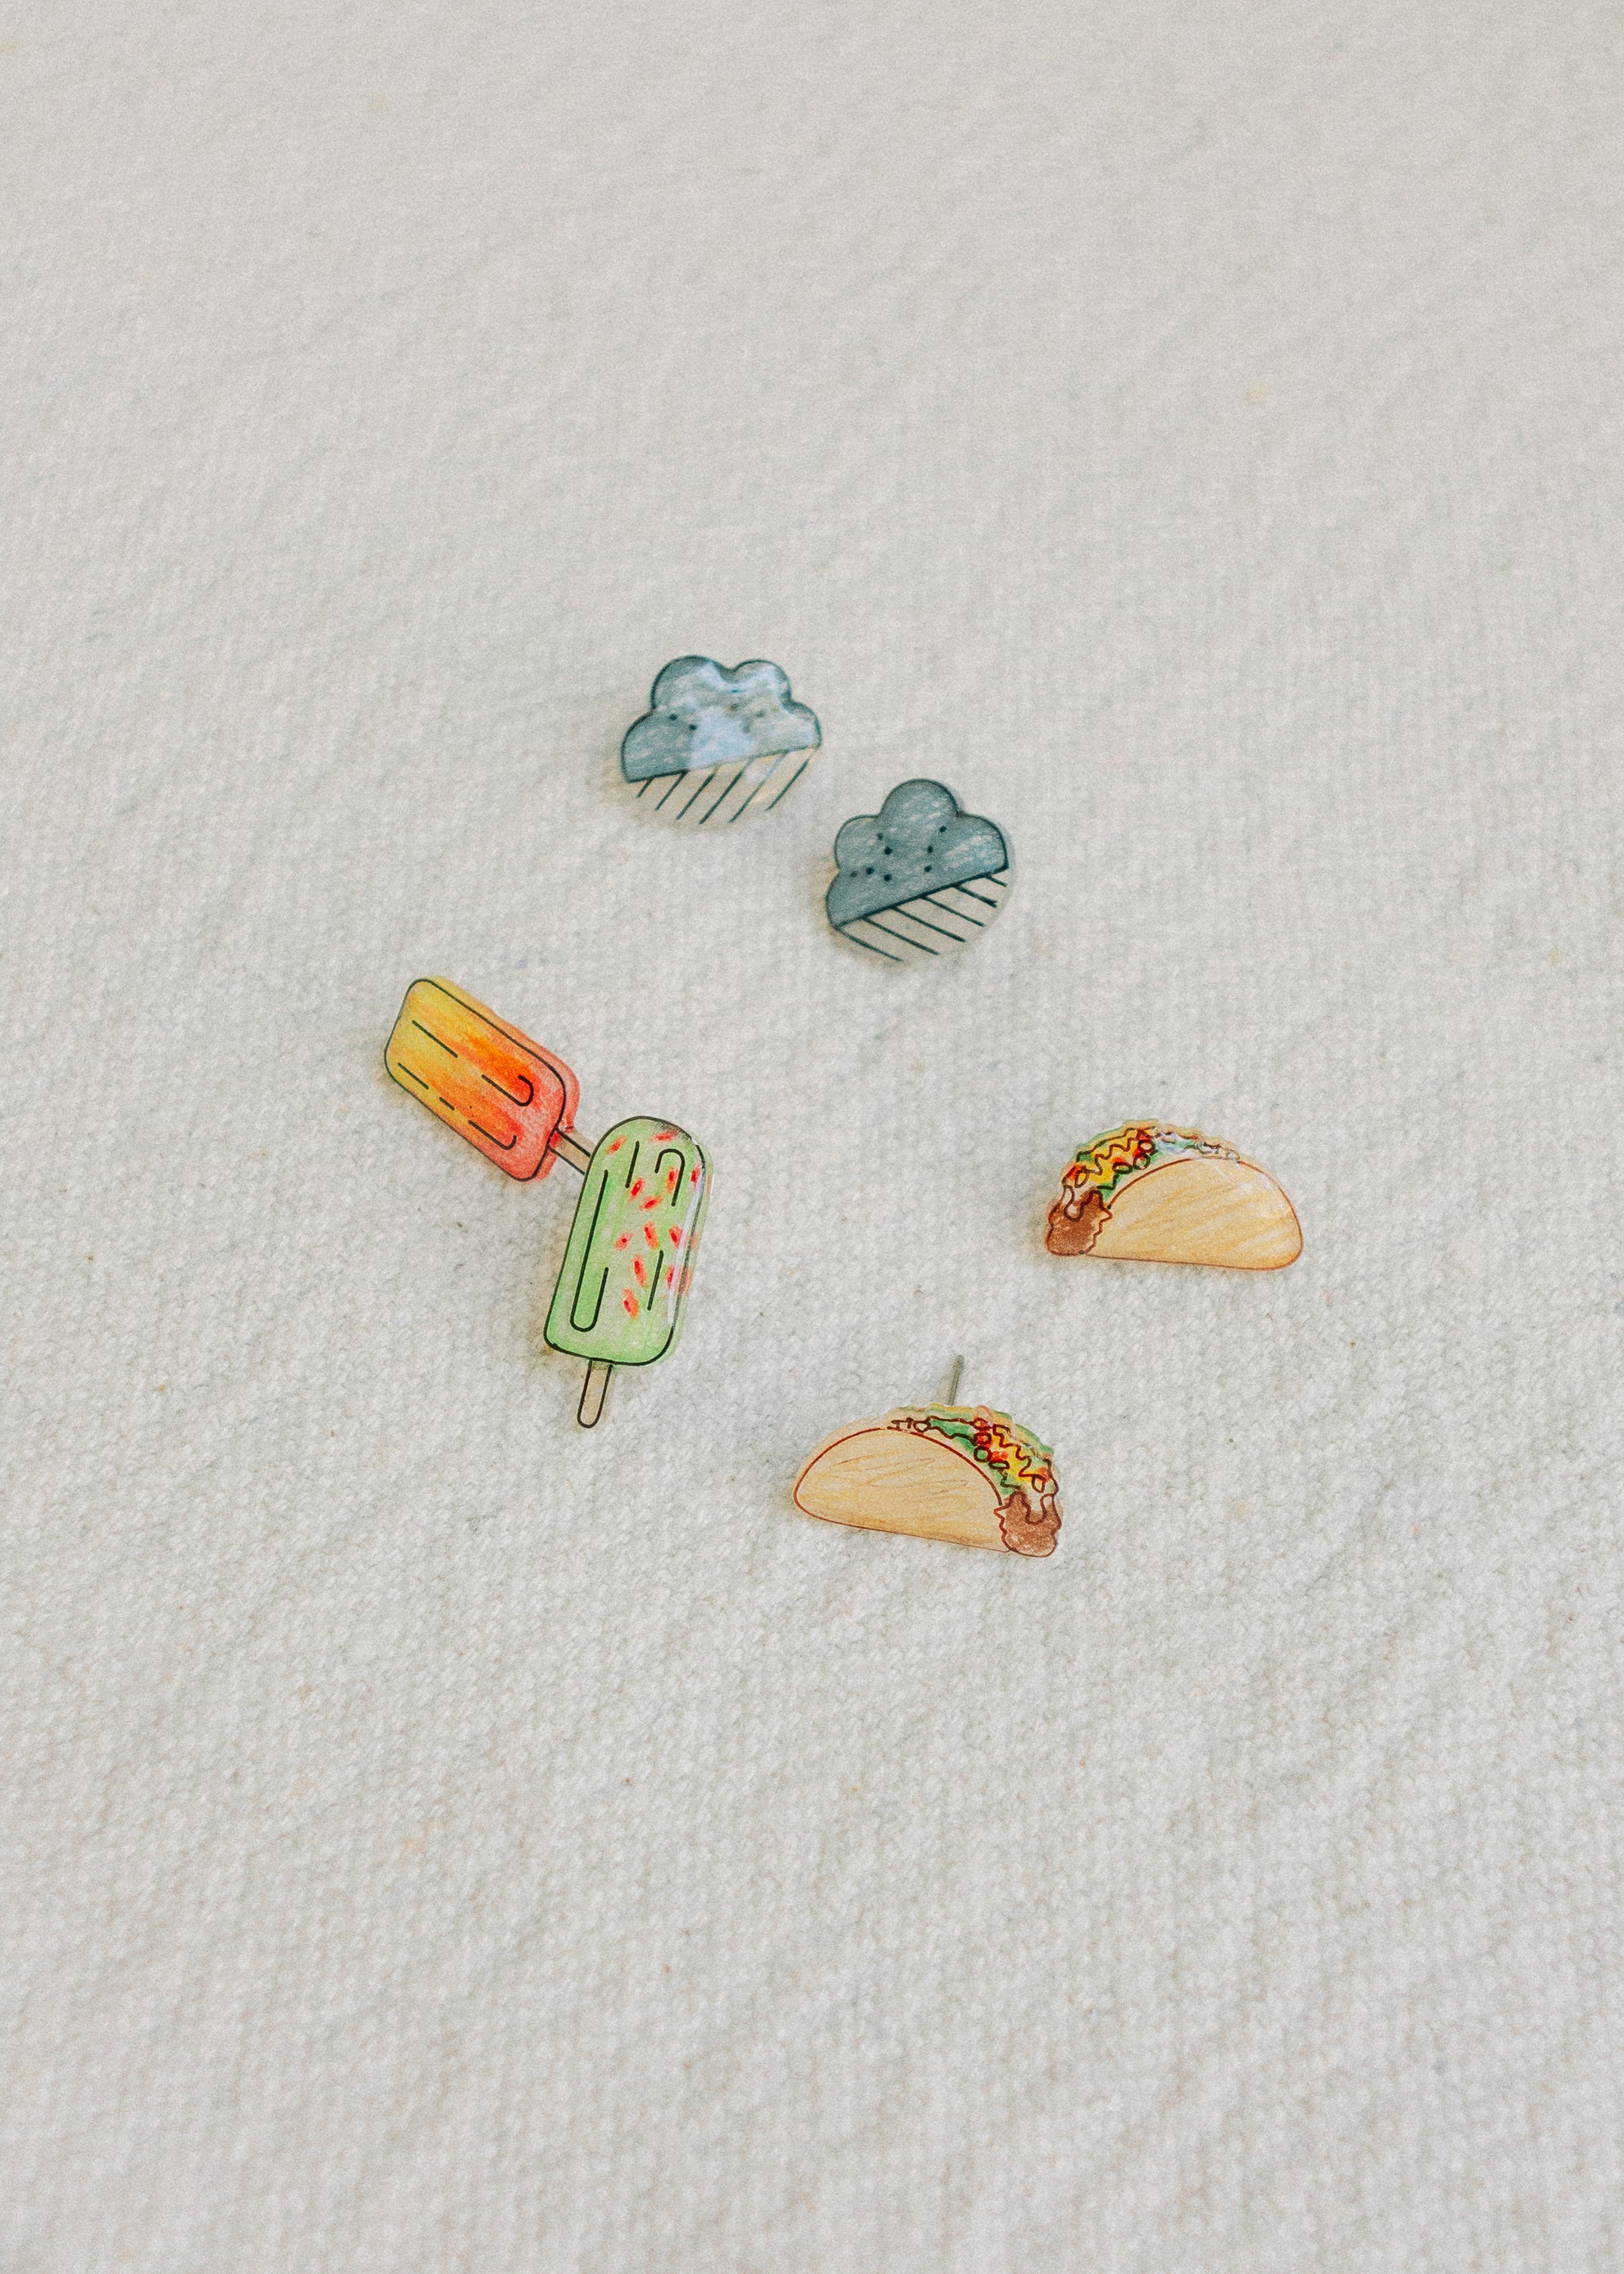 Food & Other post earrings